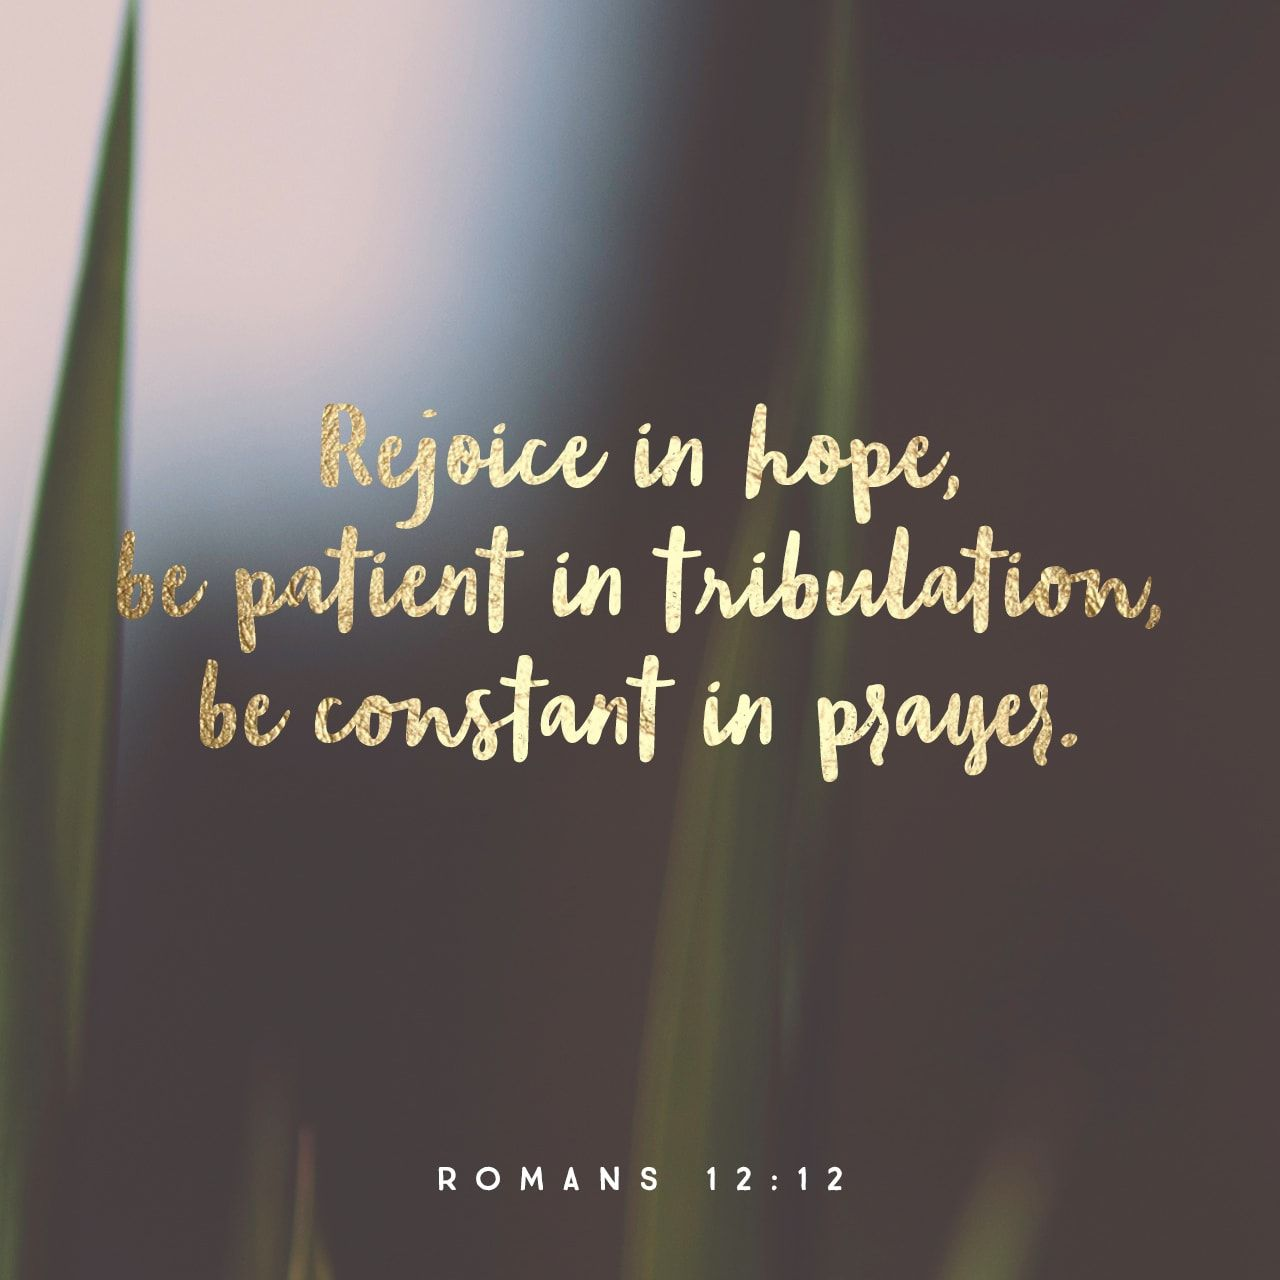 Rejoice in hope, be patient in tribulation, be constant in